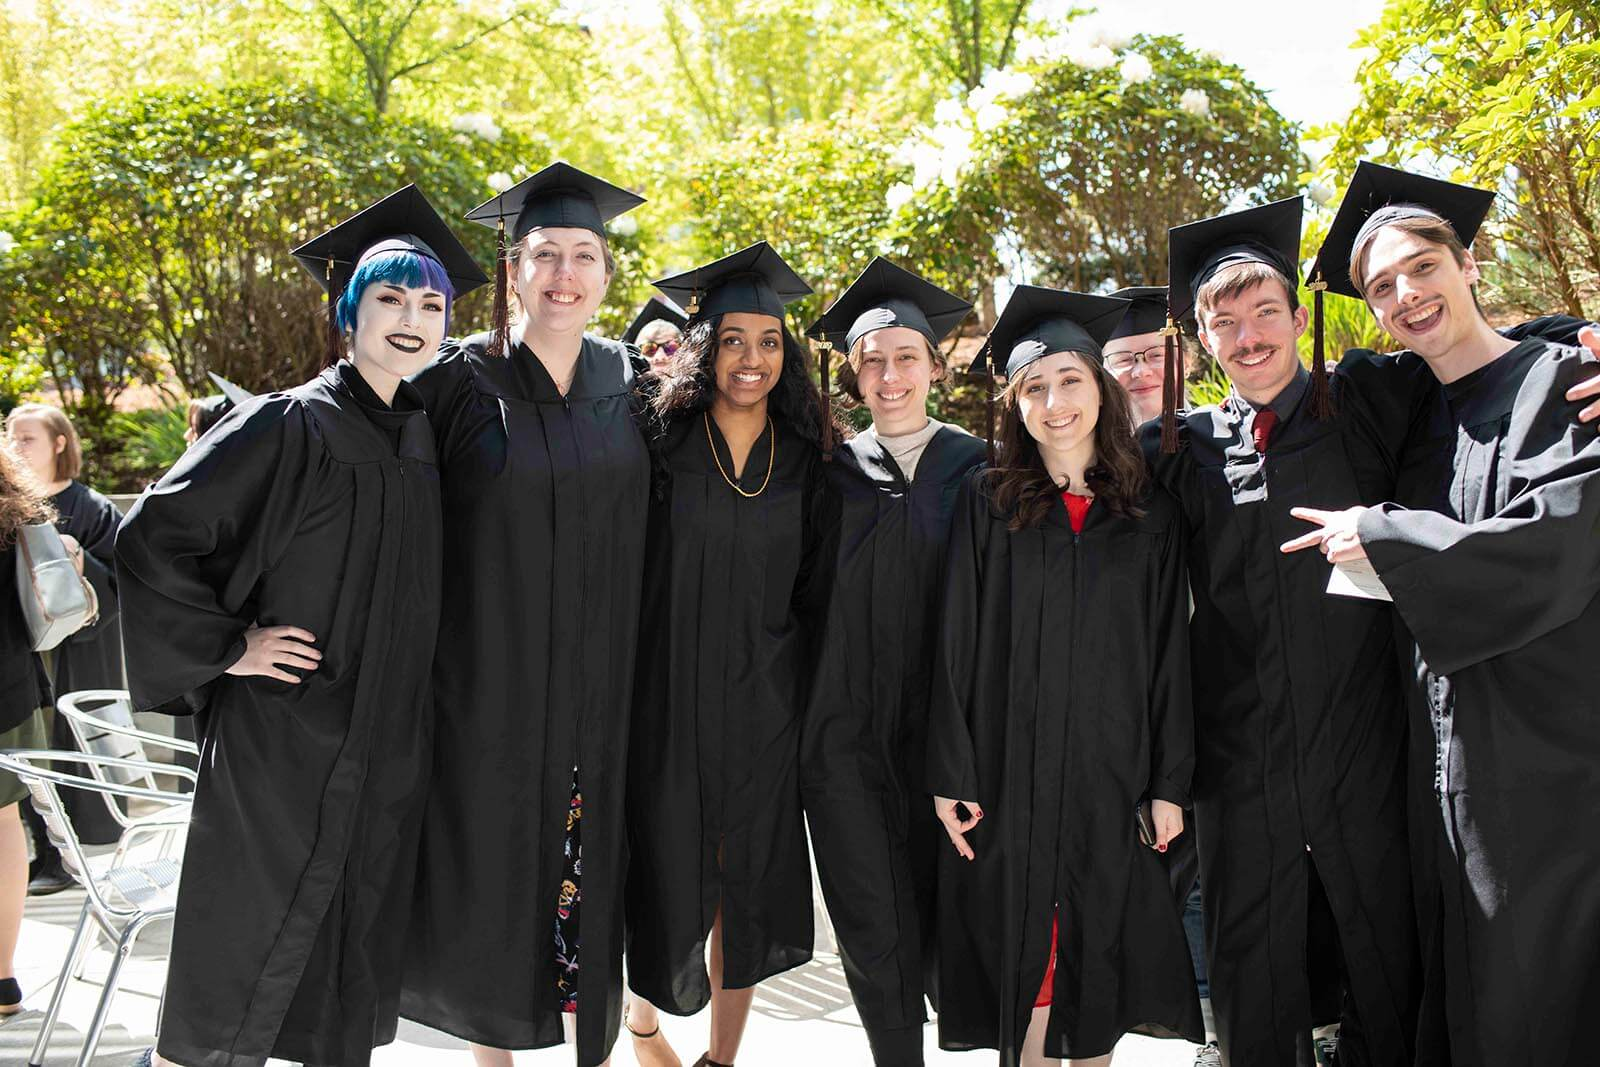 A group of students in graduation robes and mortarboards pose for a photo in a tree-lined courtyard.